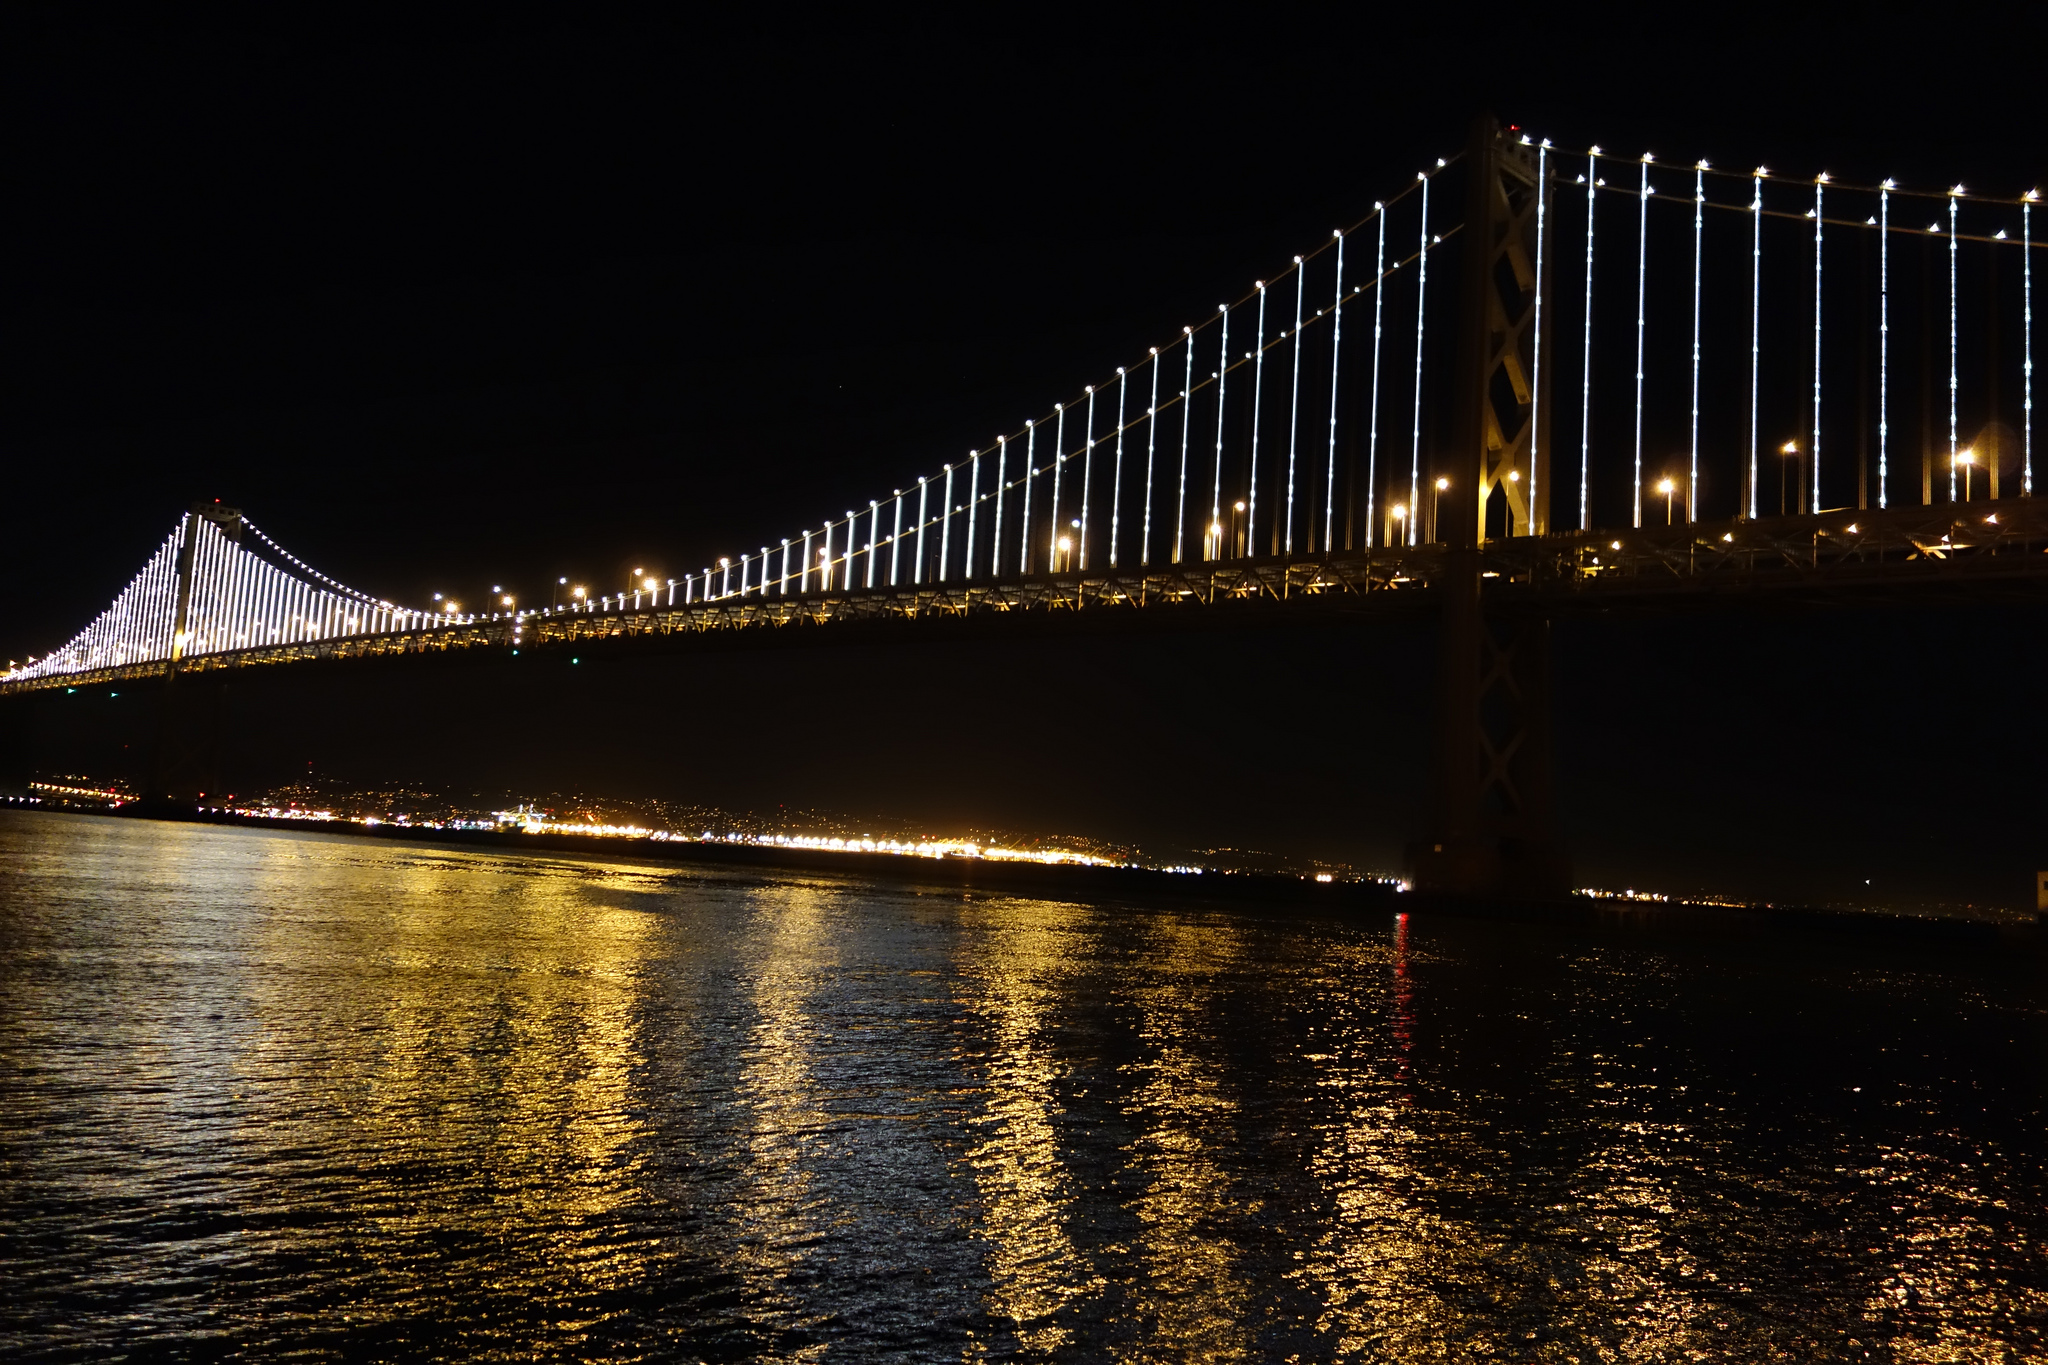 """I believe my work will allow people to see this iconic piece of infrastructure in a new way,"" artist Leo Villareal told Bay Area Bites. (Steve Rhodes/Flickr)"